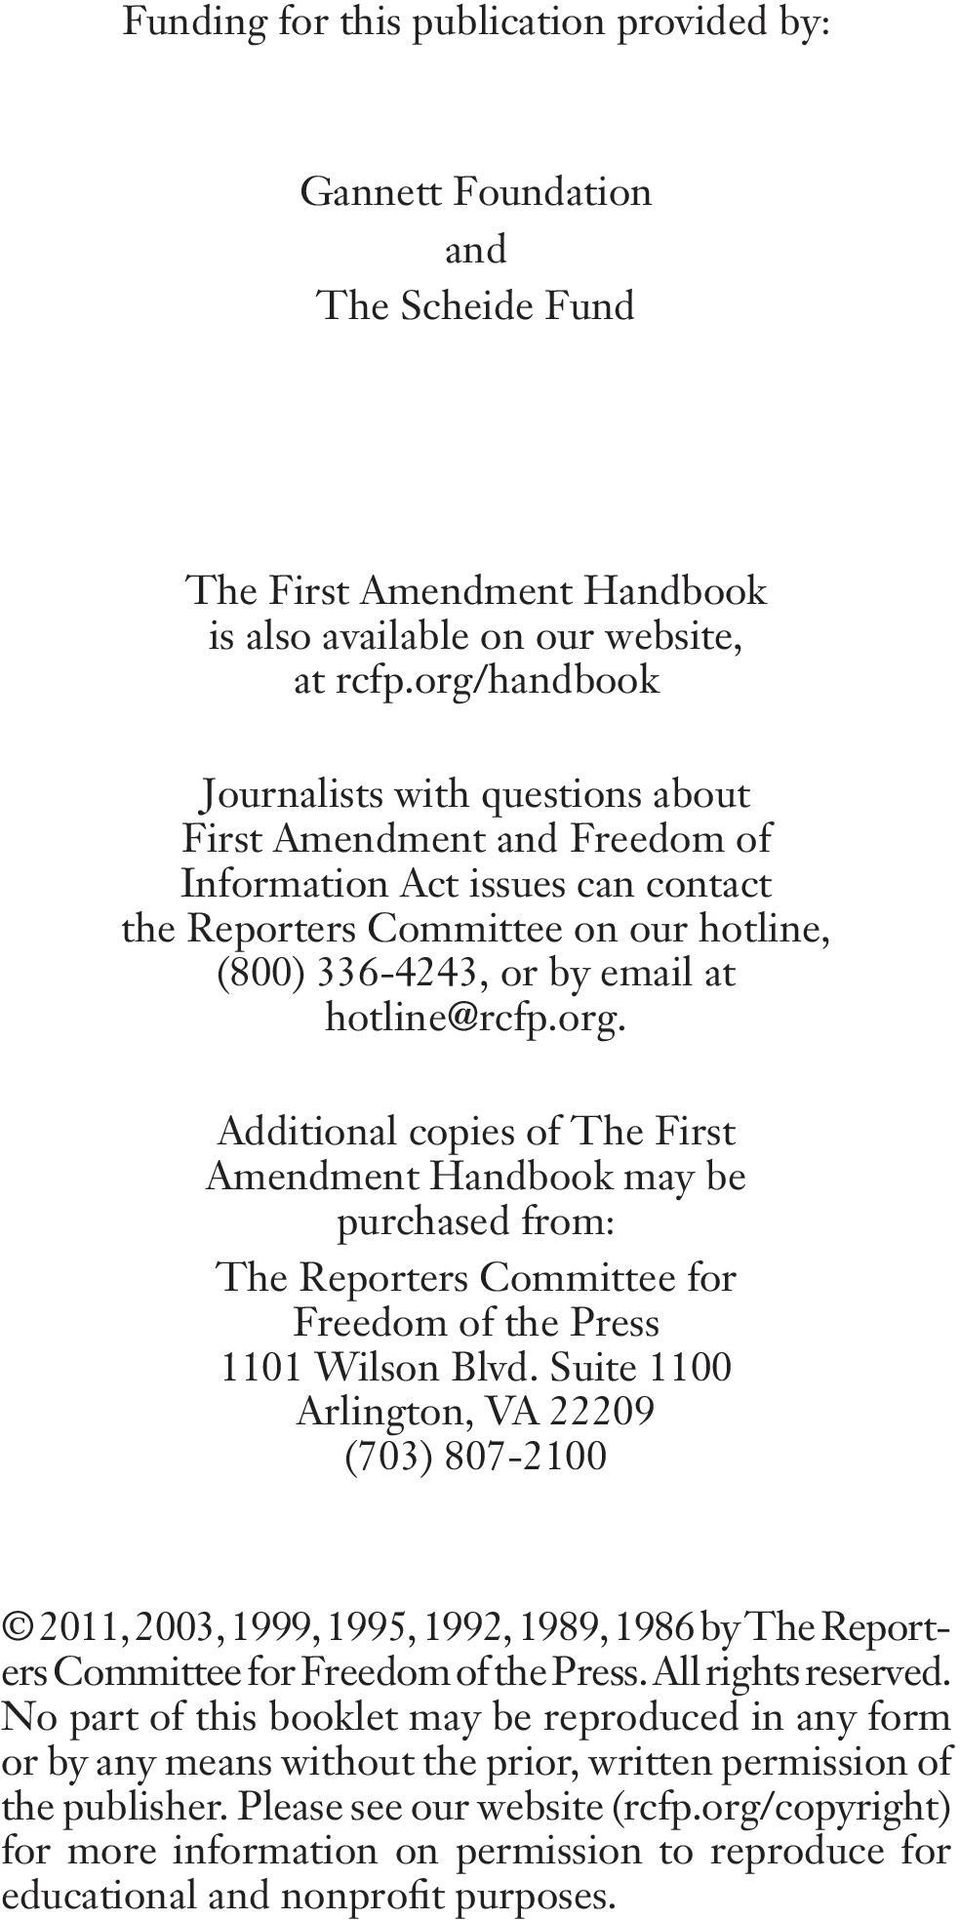 Suite 1100 Arlington, VA 22209 (703) 807-2100 2011, 2003, 1999, 1995, 1992, 1989, 1986 by The Reporters Committee for Freedom of the Press. All rights reserved.